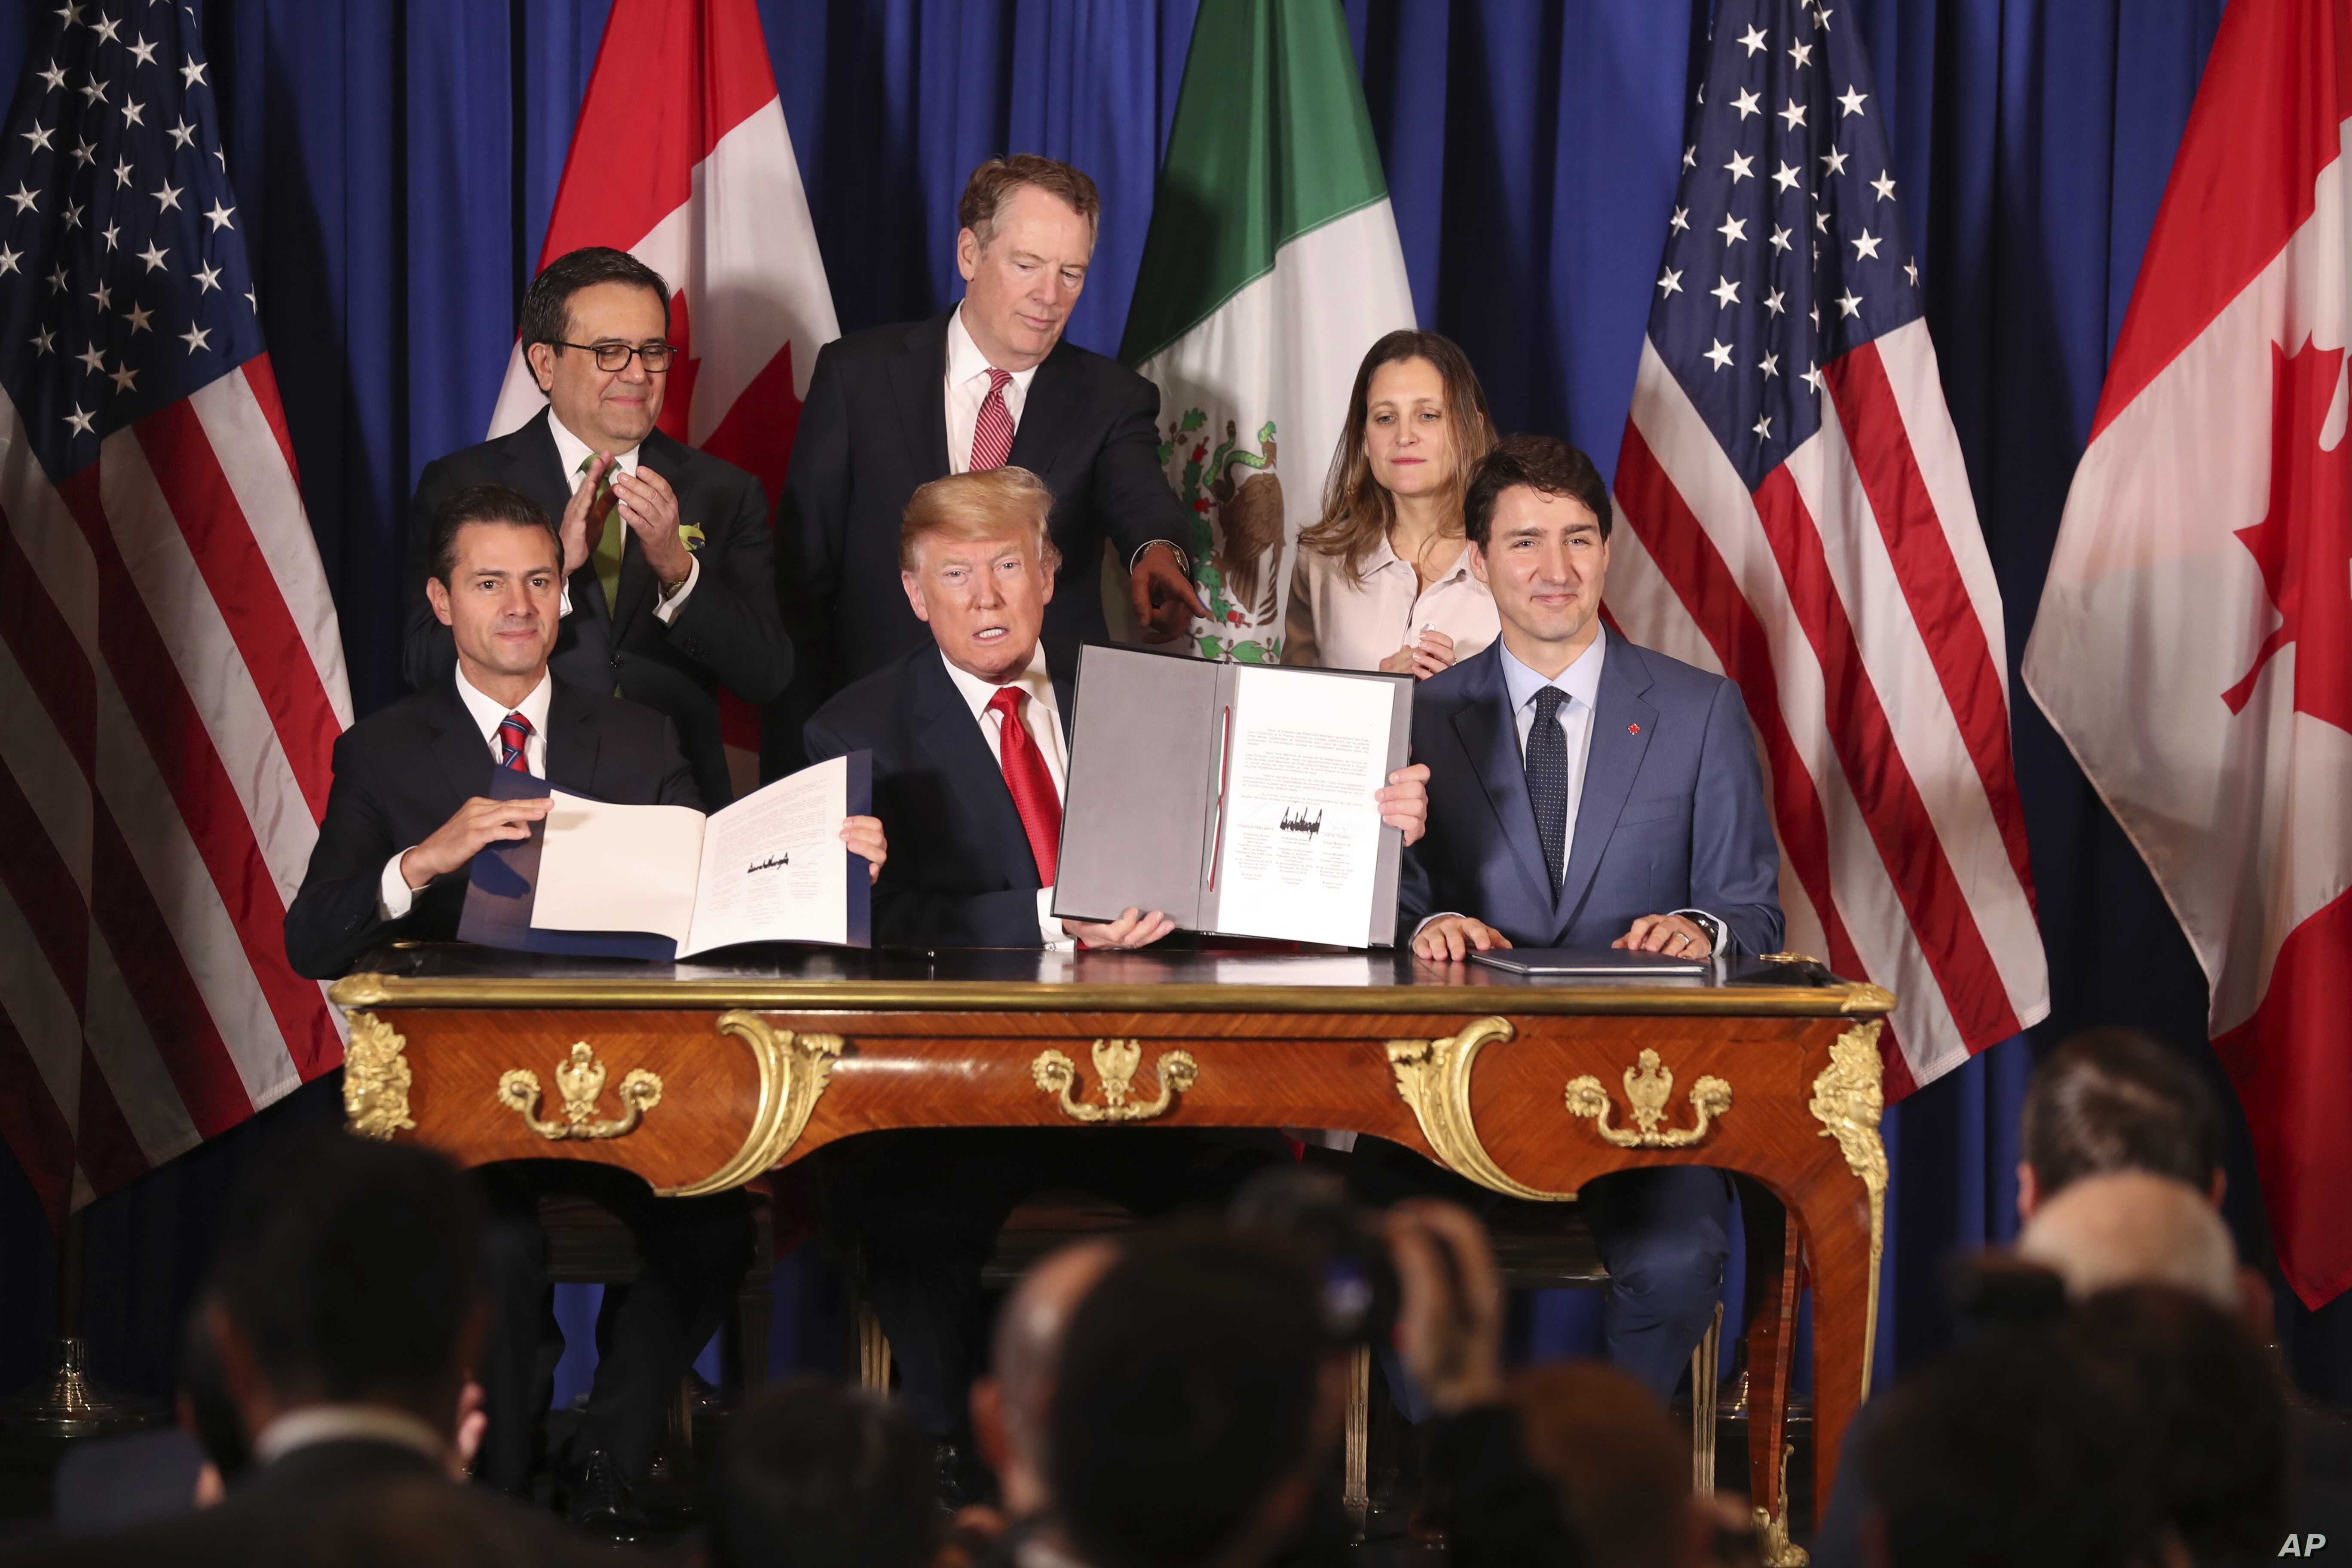 President Donald Trump, center, sits between Canada's Prime Minister Justin Trudeau, right, and Mexico's President Enrique Pena Nieto after they signed a new U.S.-Mexico-Canada Agreement that is replacing the NAFTA trade deal.